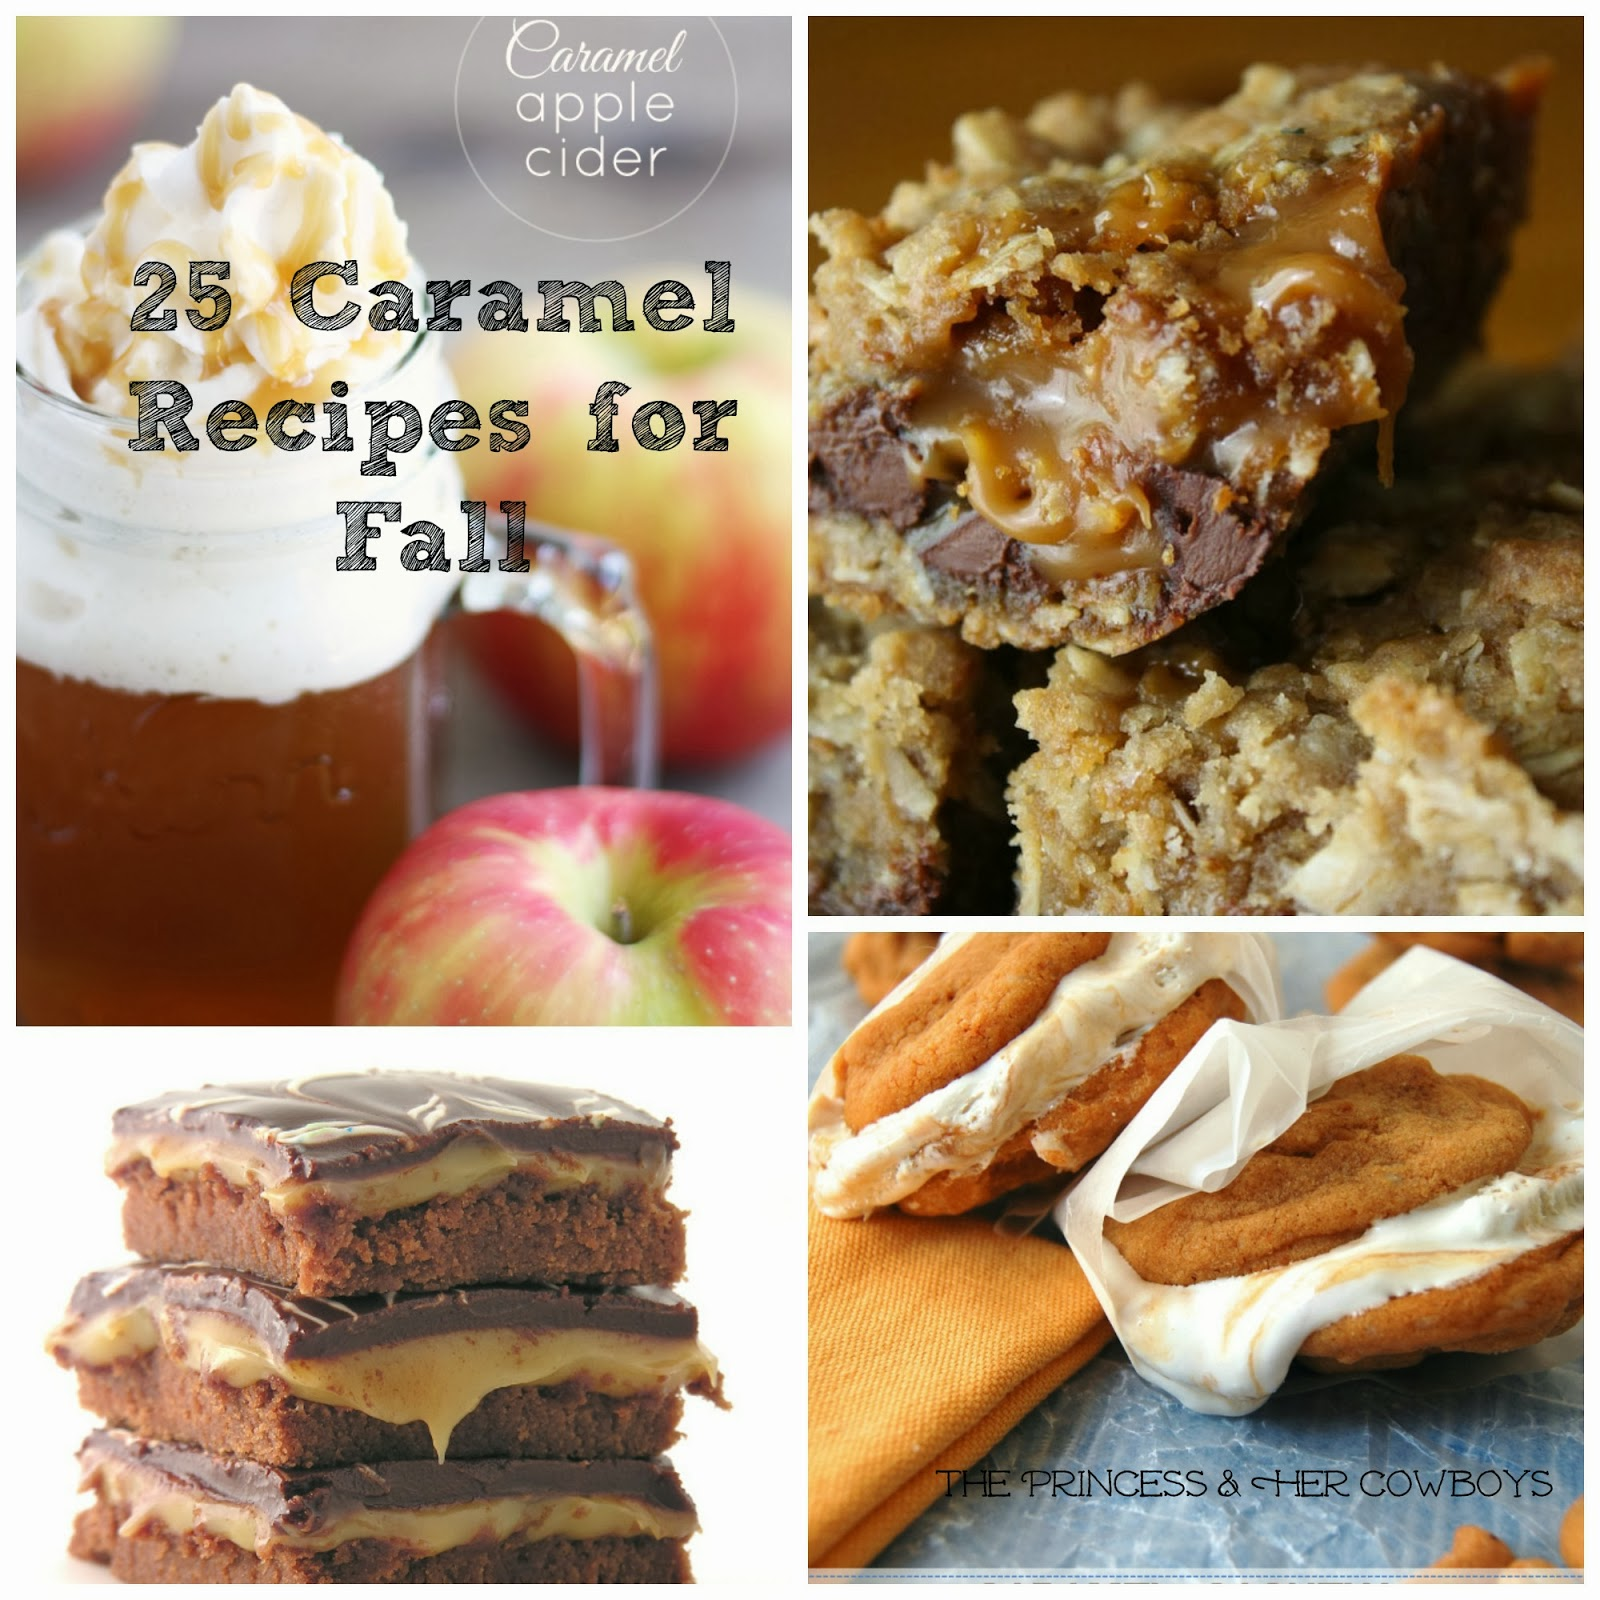 25 Caramel Recipes